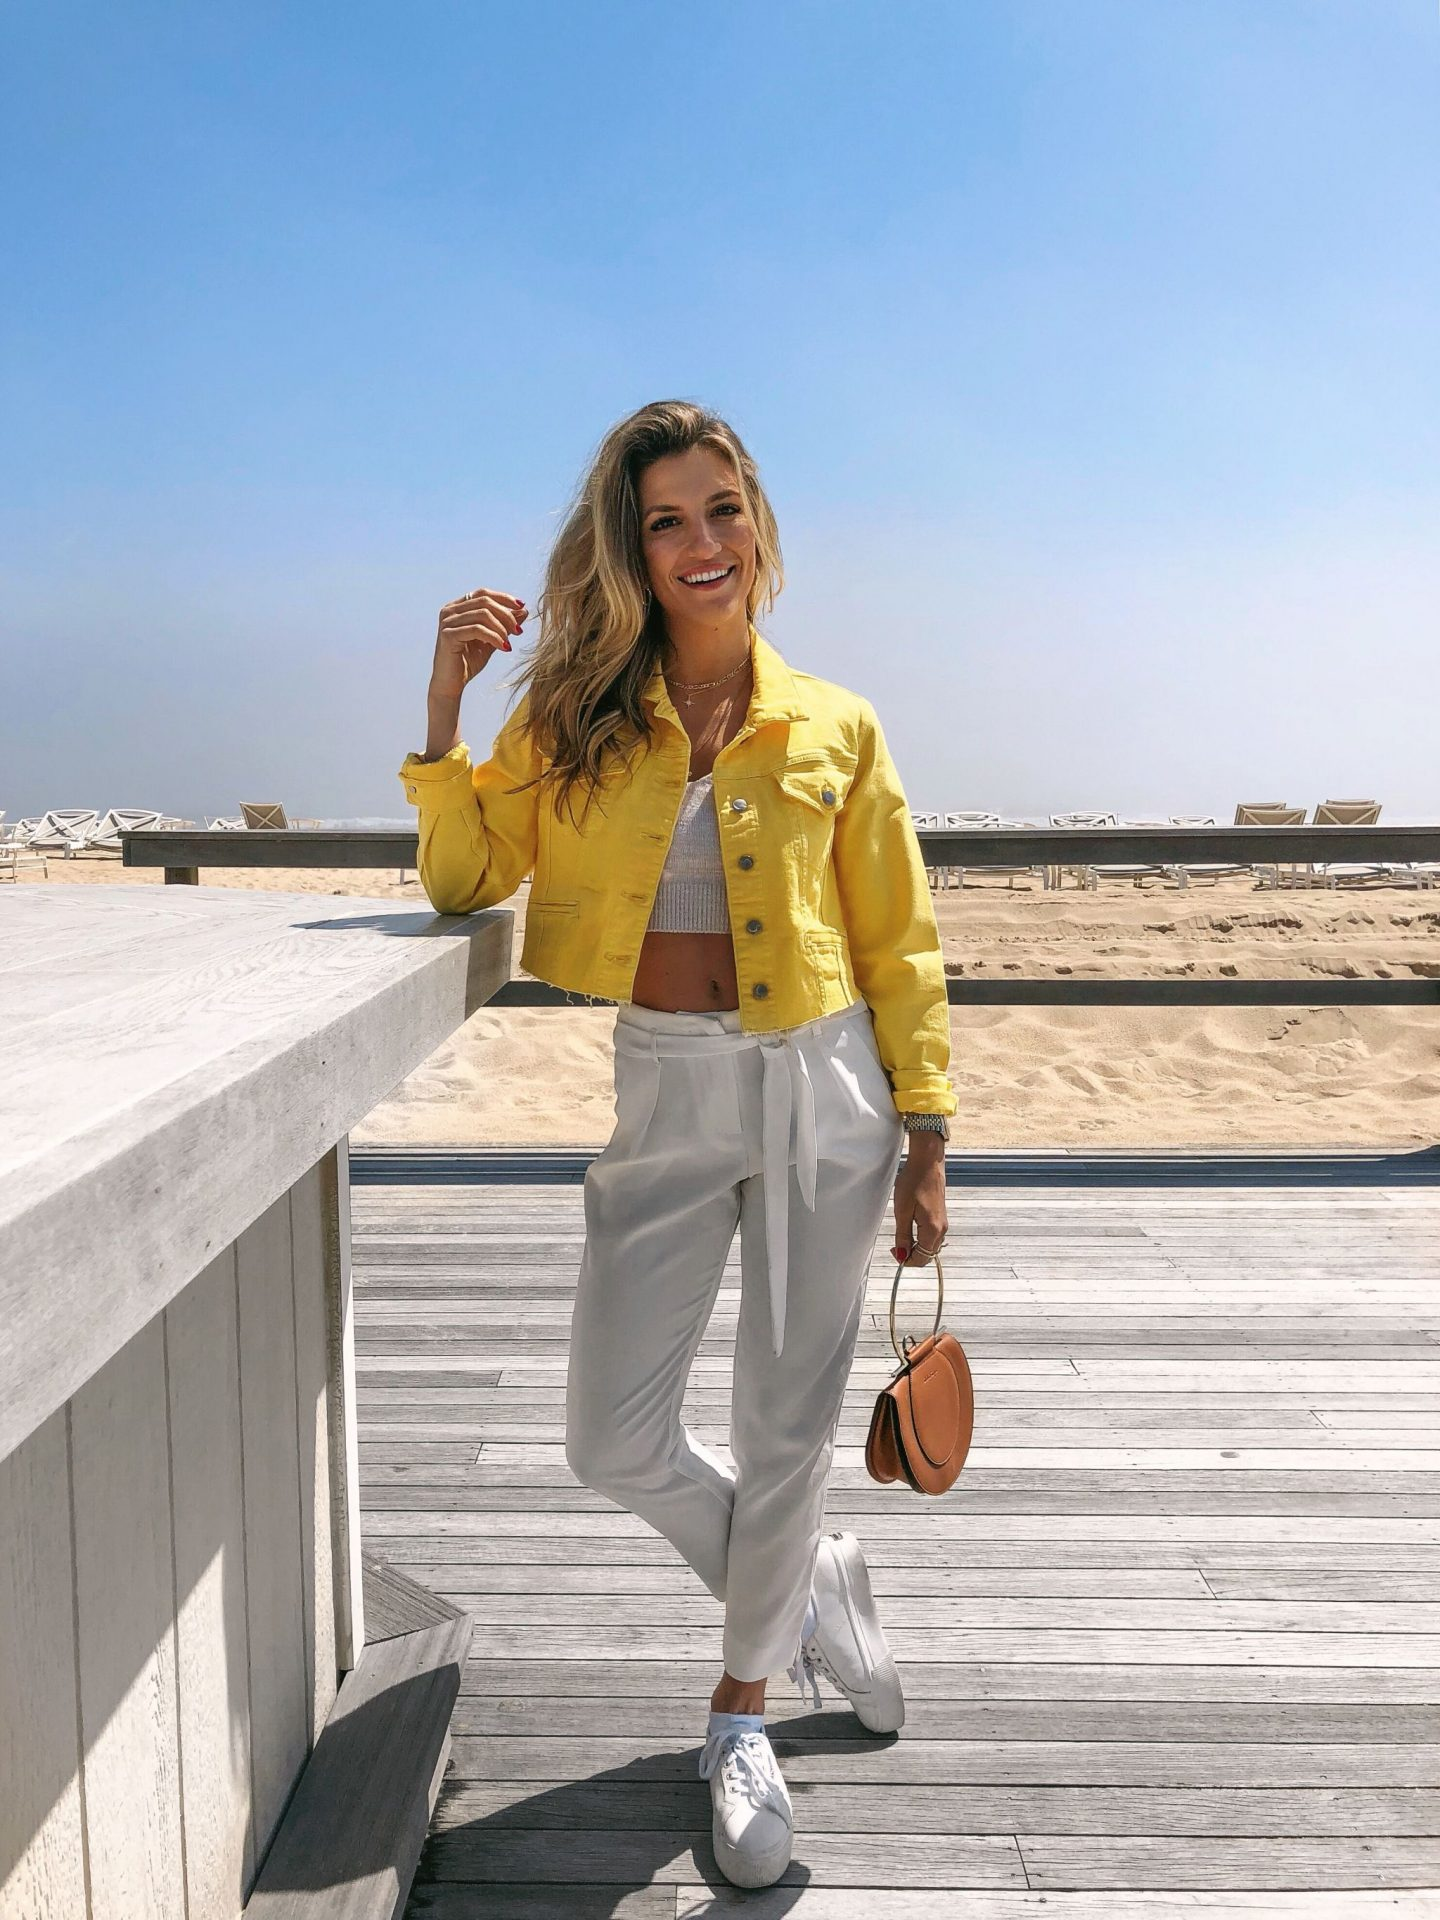 Cassandra DiMicco, Cass DiMicco, Dressed For Dreams, NYC, New York City, New York, Street Style NYC, Street Style 2018, NYC Street Style Street Style Outfits, 2018 Trends, NYC Fashion Blogger, The Hamptons, The Hamptons Style, Yellow Denim Jacket, Ferragamo Purse, Platform Sneakers, All White Outfit